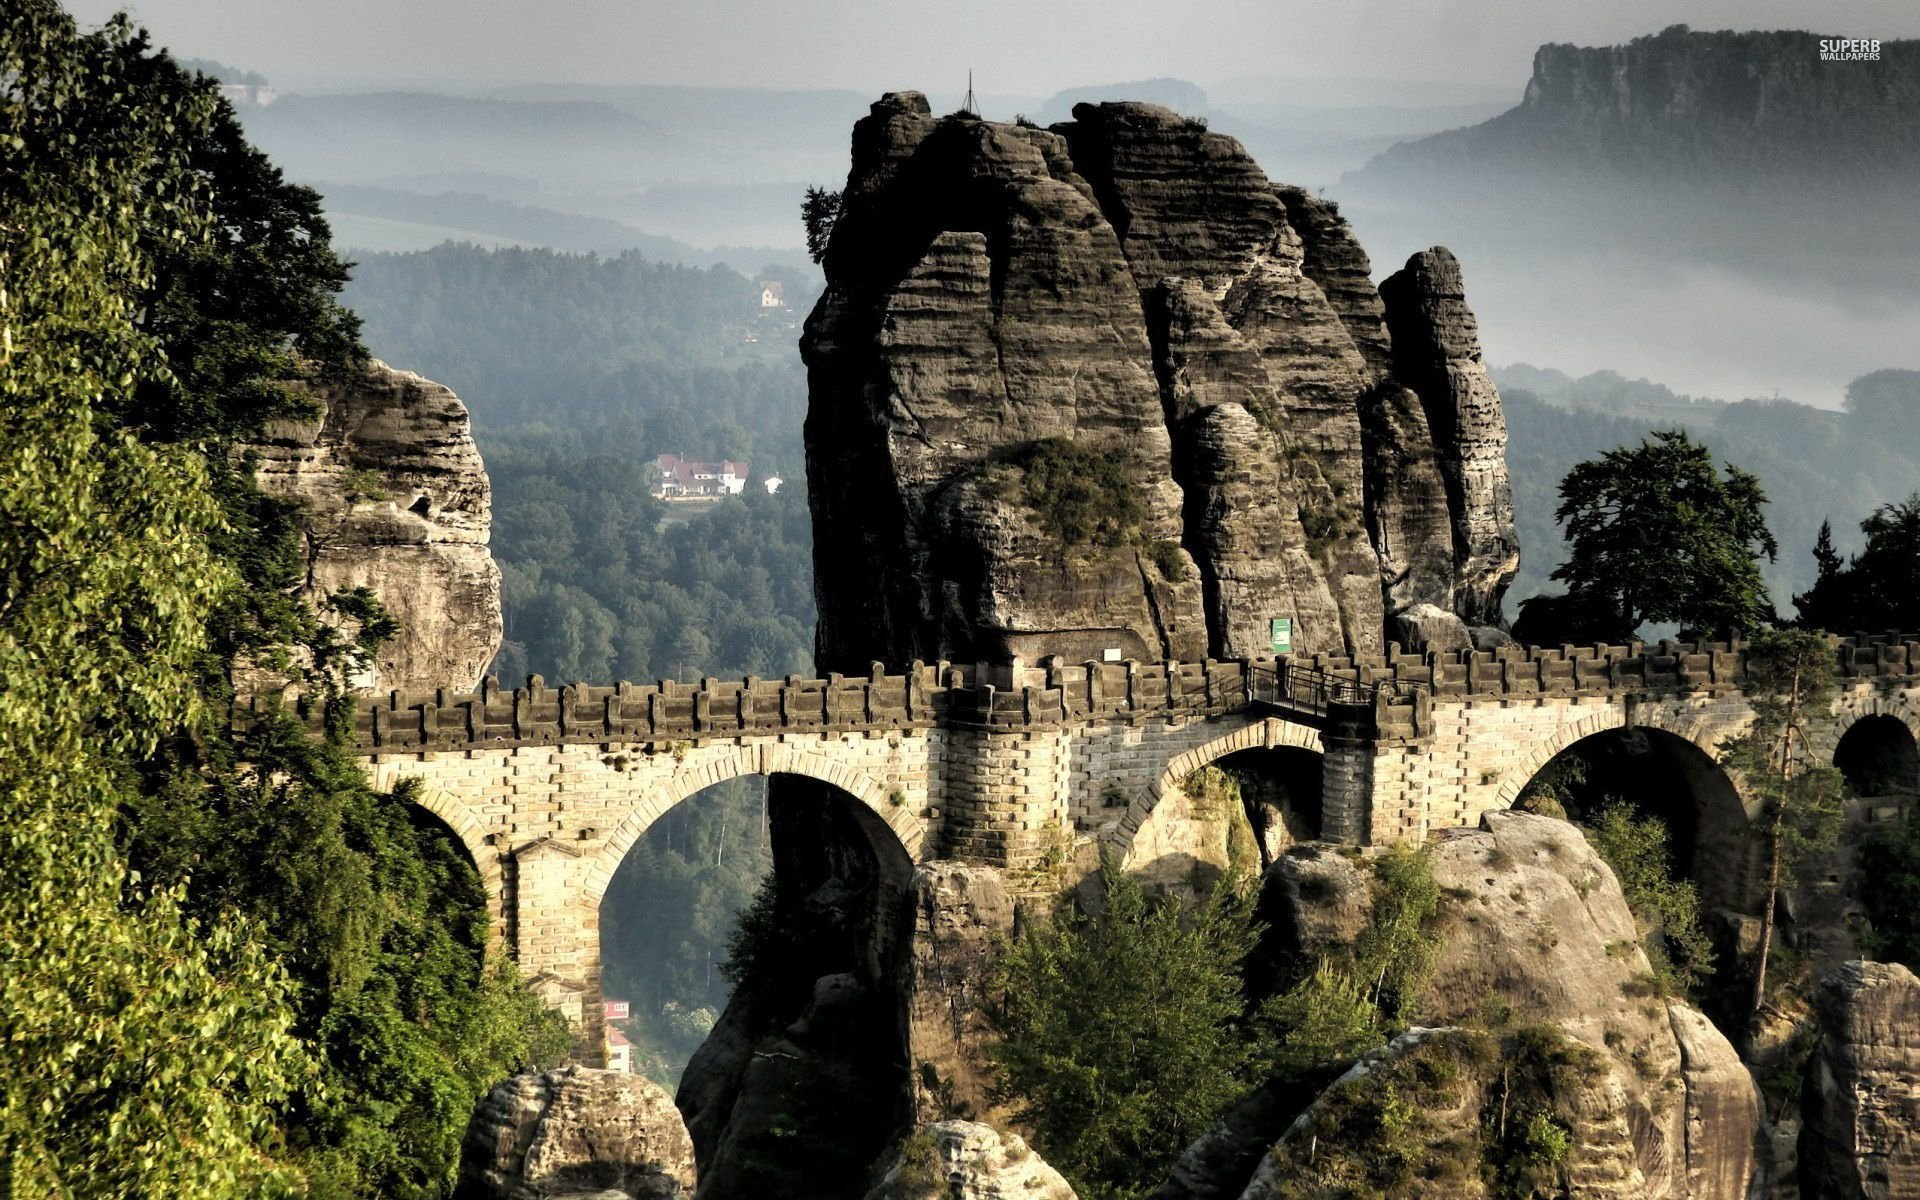 bastei bridge 1920x1080 - photo #16